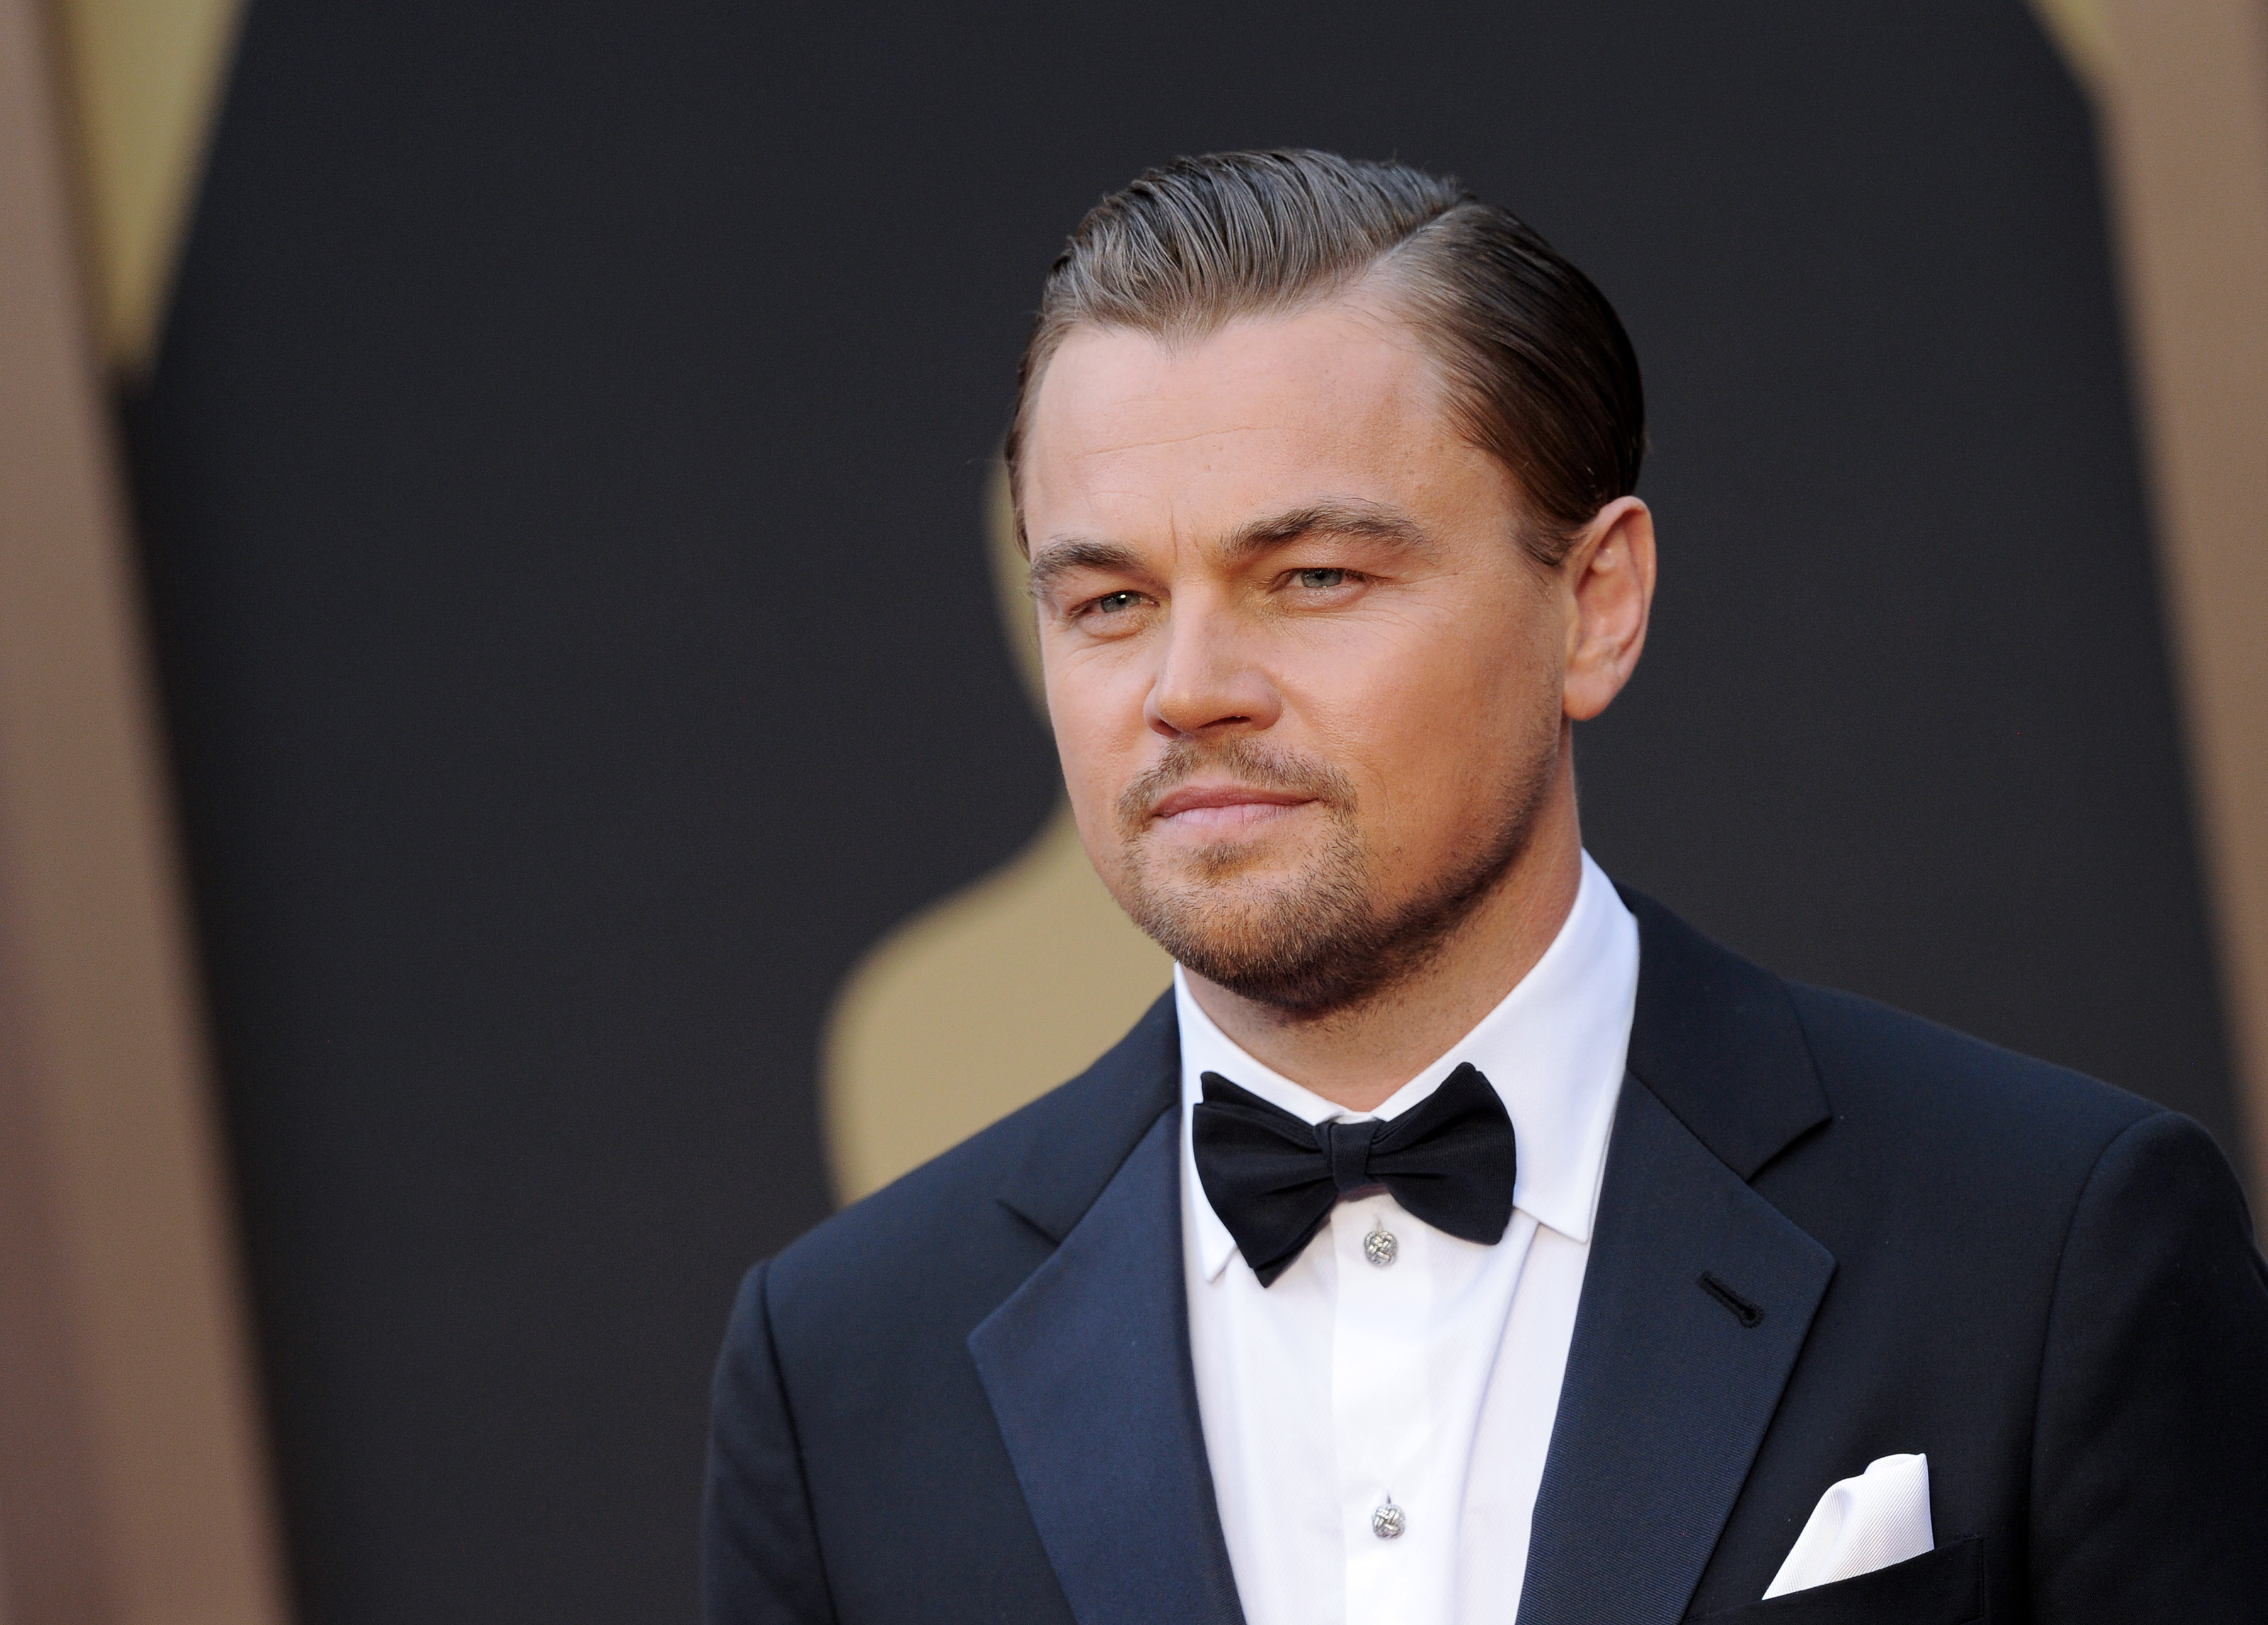 Leonardo DiCaprio arrives at the 86th Annual Academy Awards on March 2, 2014 in Hollywood.